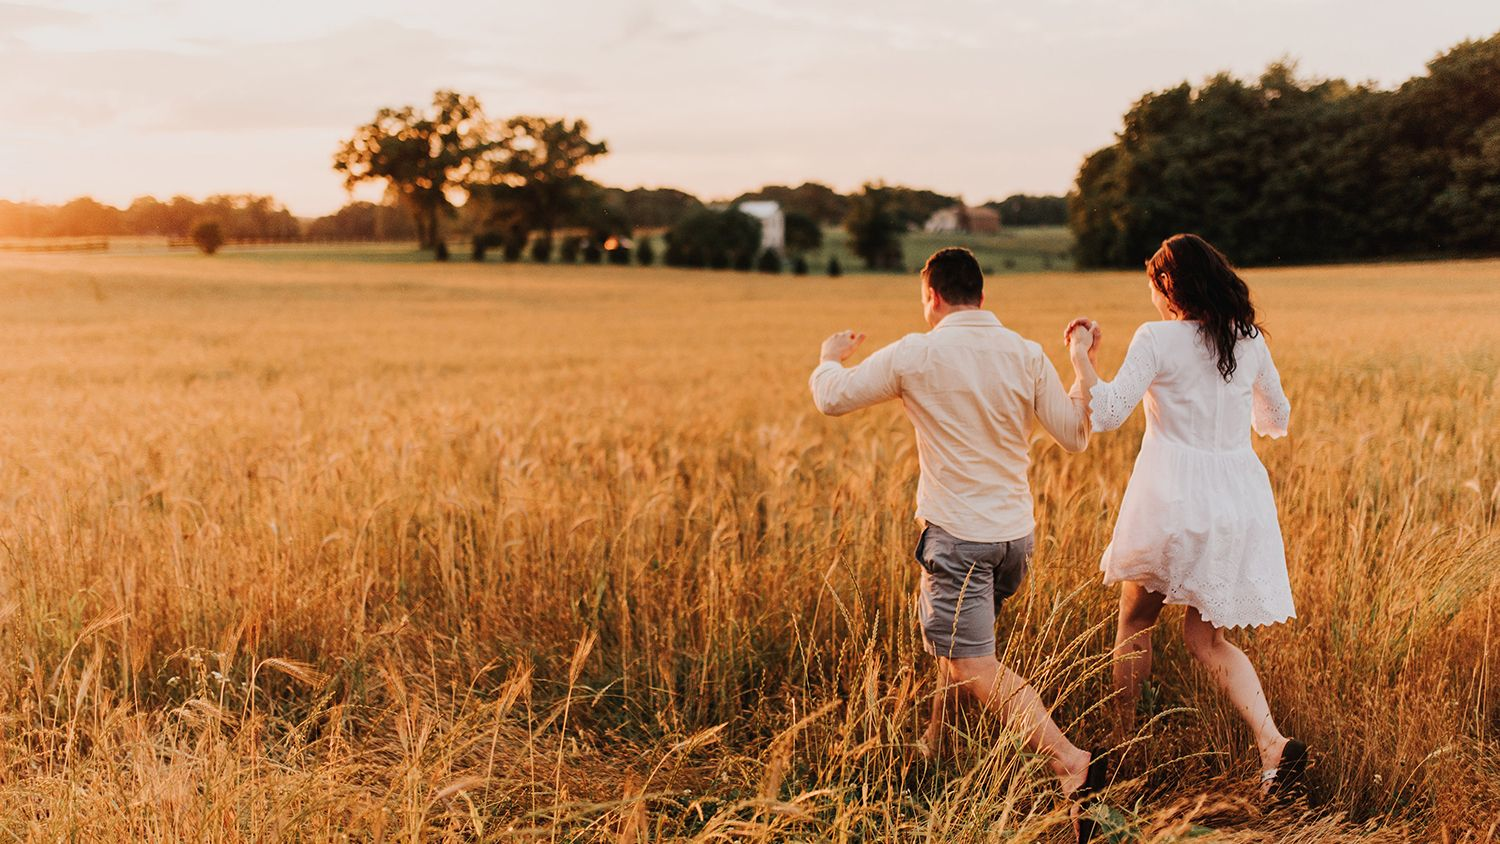 Bride And Groom Running Through Farm Field Sunset